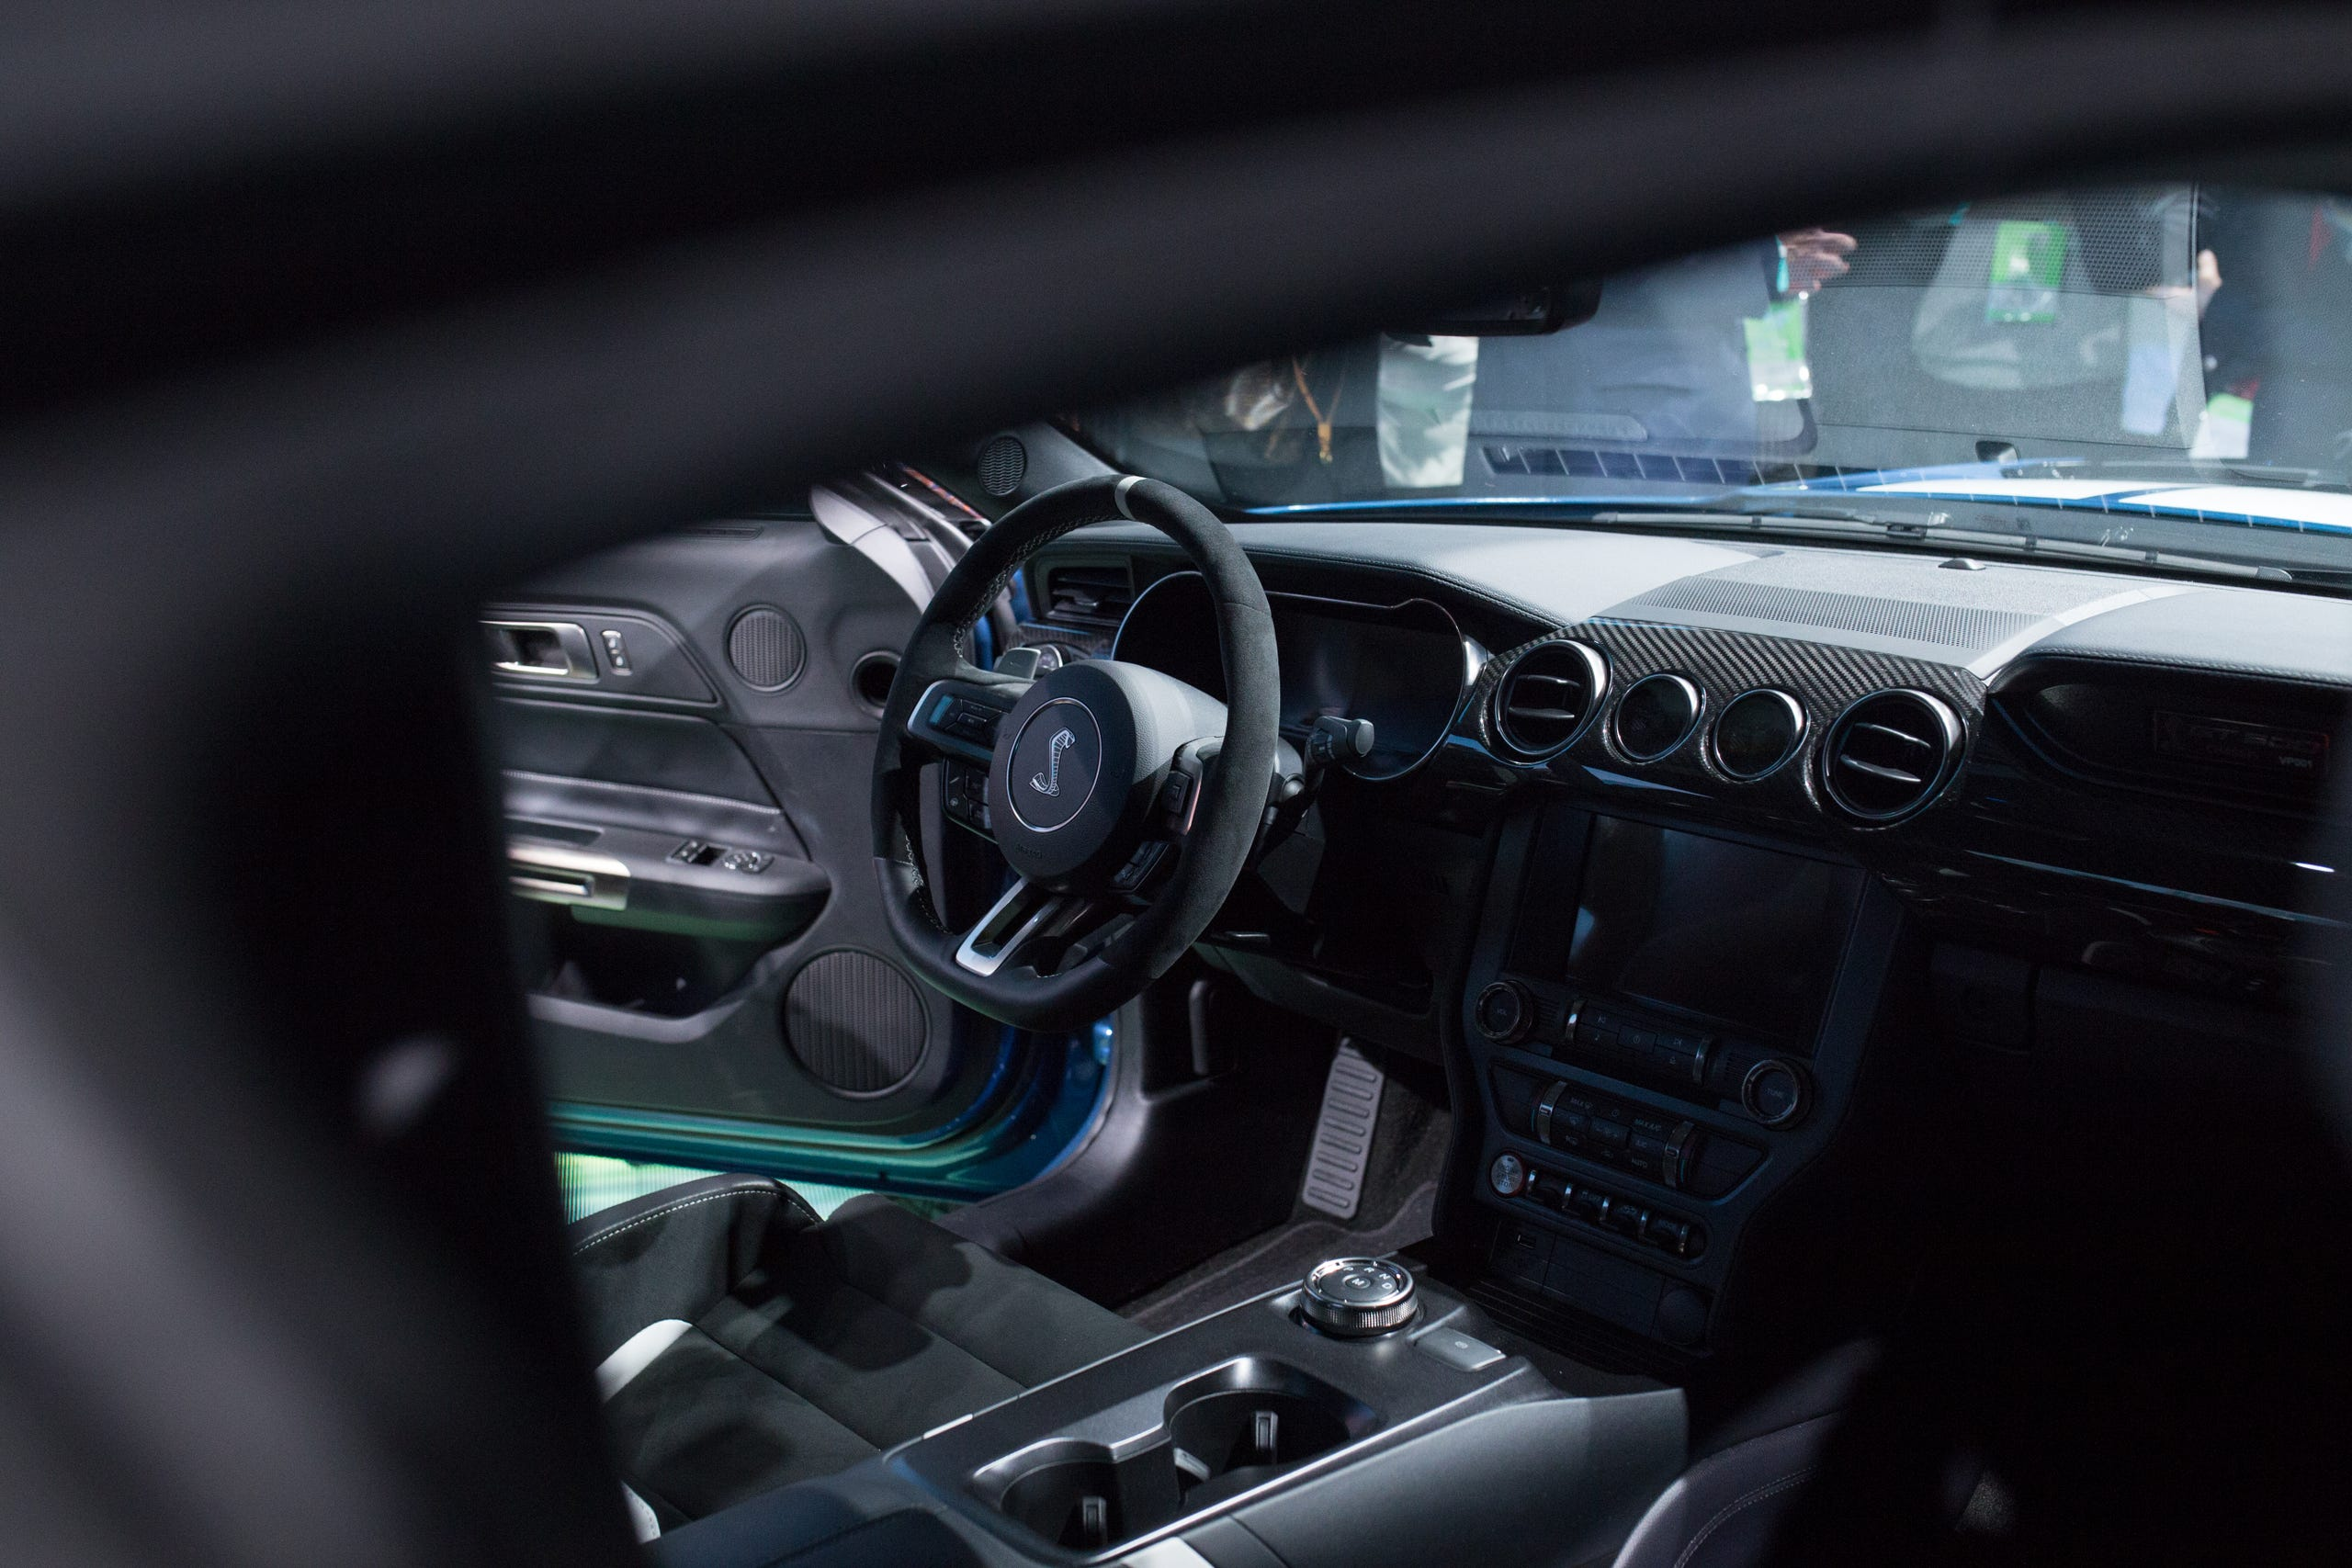 The dashboard and steering wheel of the all-new 2020 Mustang Shelby GT 500 is shown during the 2019 North American International Auto Show held at Cobo Center in downtown Detroit on Monday, Jan. 14, 2019.